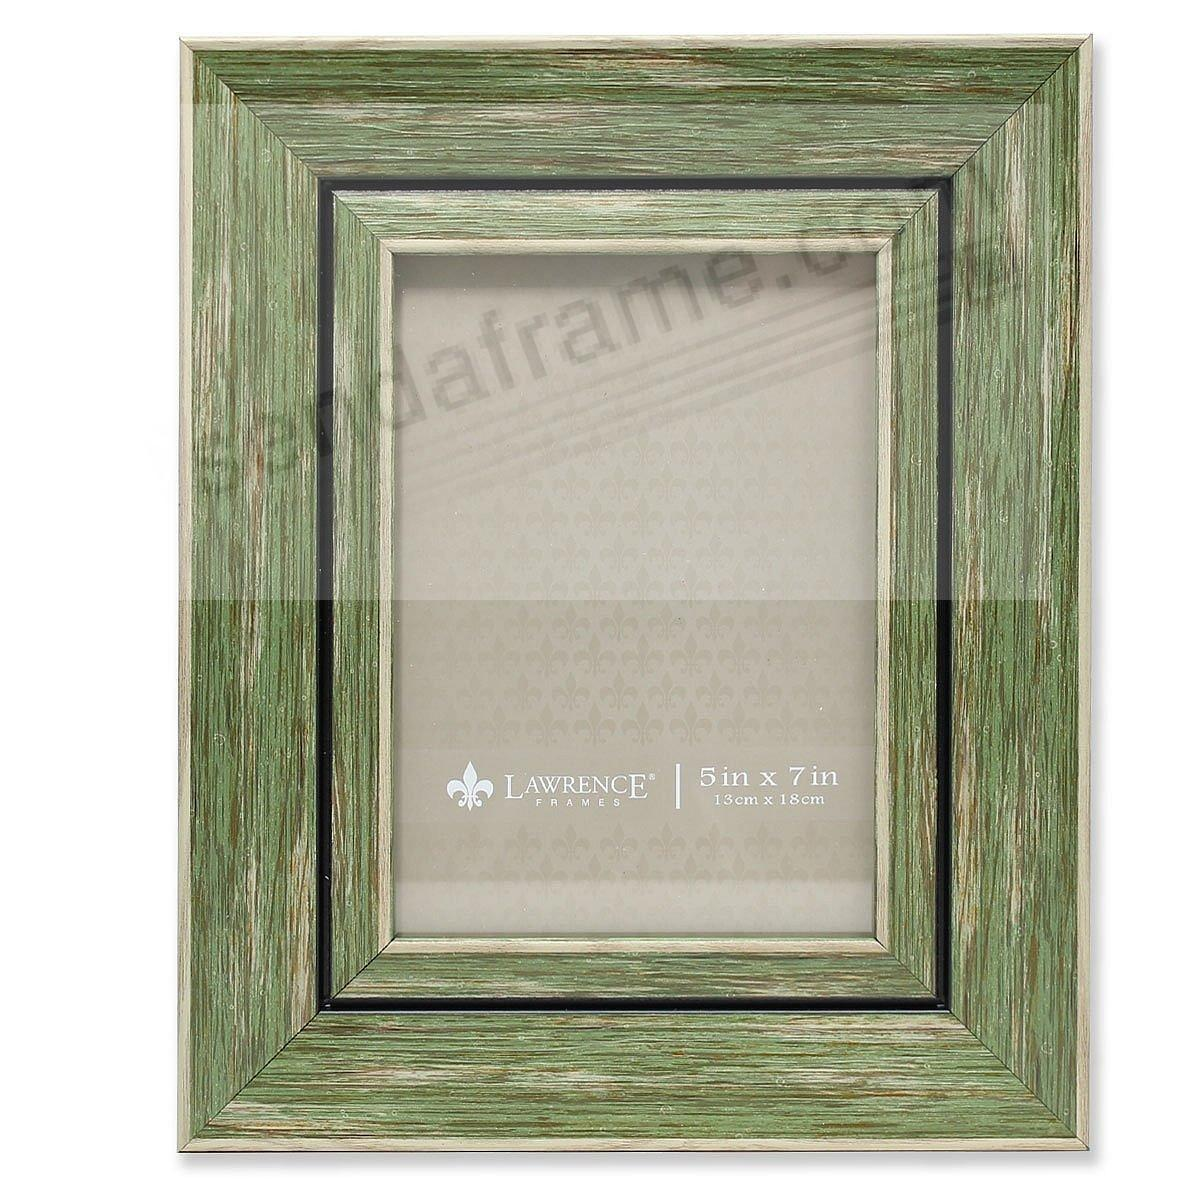 Weathered/Antique Green Angled Wood Frame by Lawrence®